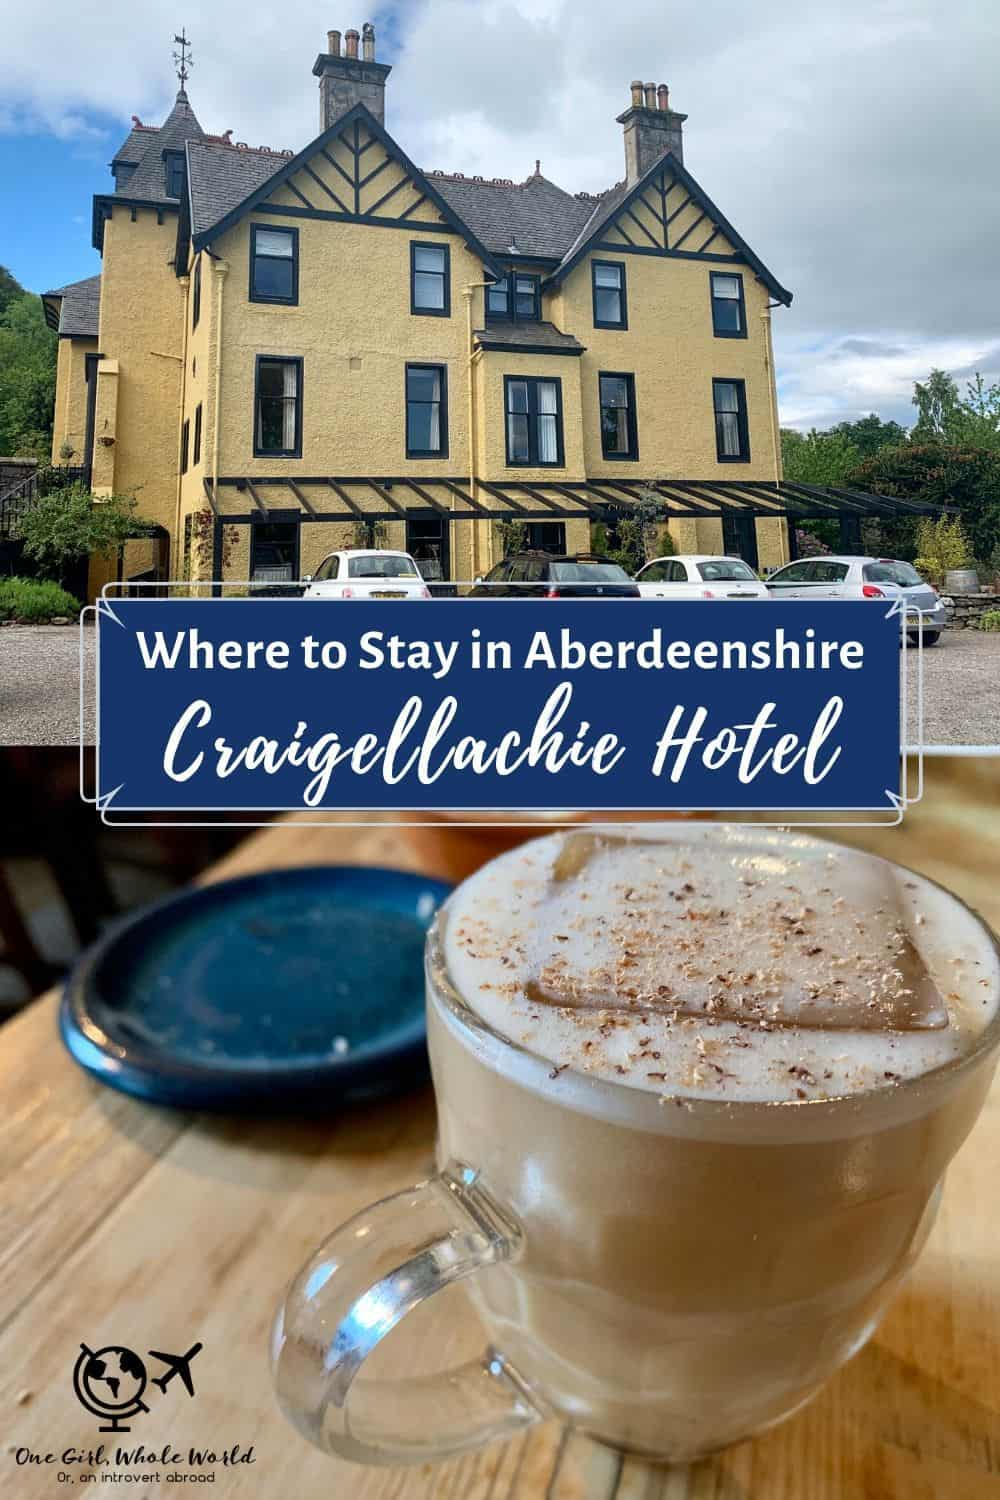 Review of the Craigellachie Hotel in Aberdeenshire, Scotland | What to expect if you stay at this lovely hotel in Scotland's Speyside region (and near many whisky distilleries)...from the cozy rooms to the amazing restaurant and more! Where to stay in Aberdeenshire, hotels in Speyside. #scotland #aberdeenshire #hotelreview